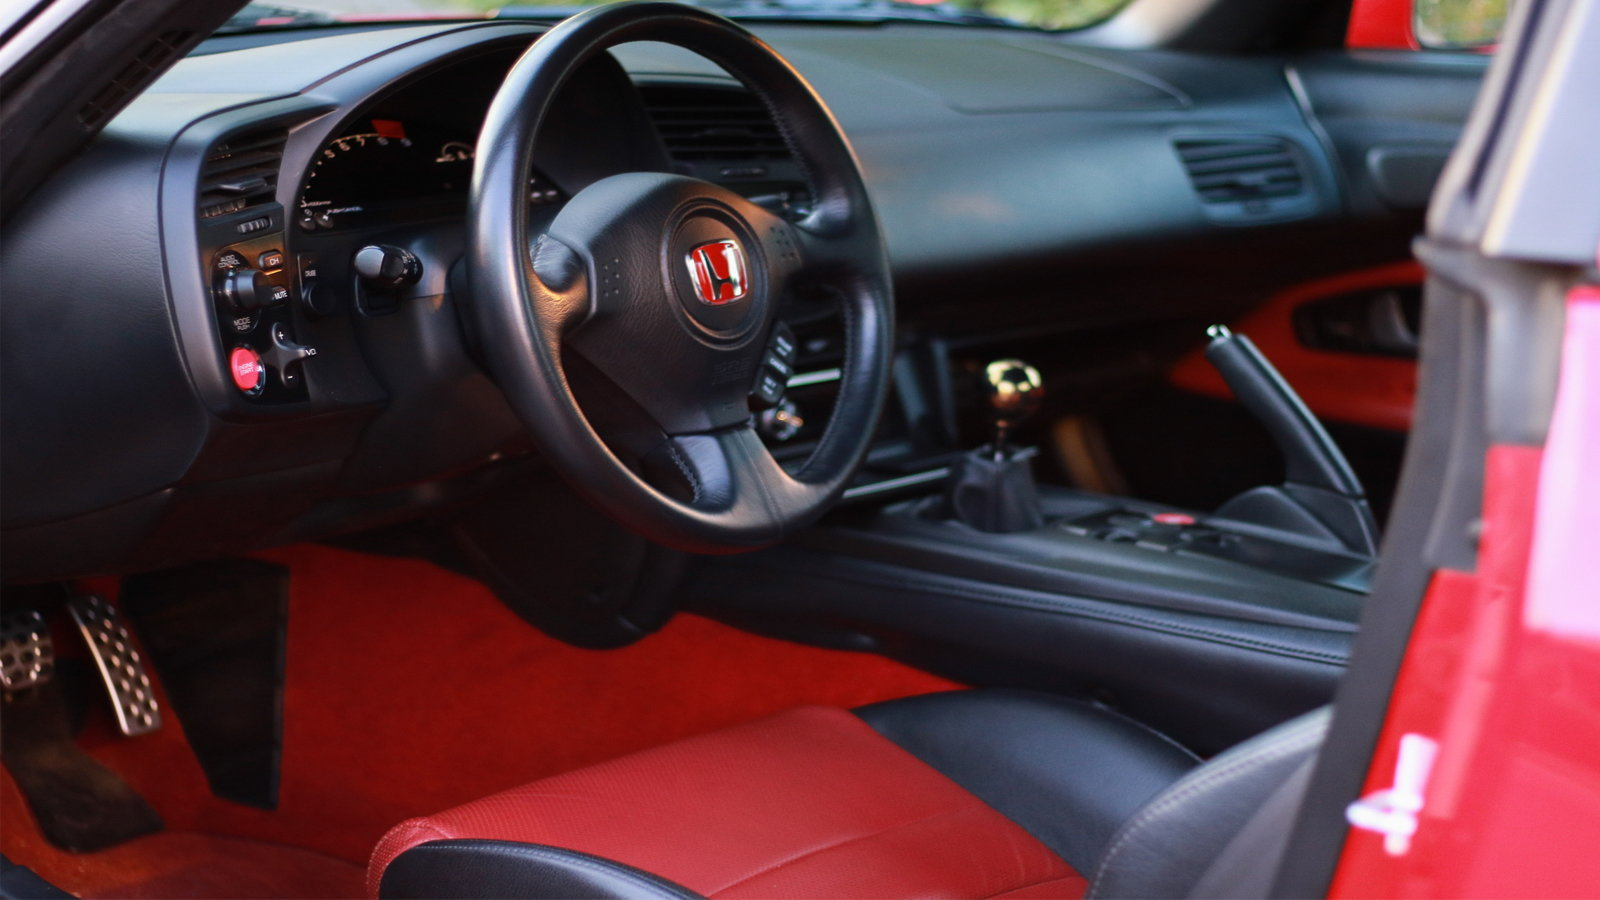 Custom Interior, Seats, Steering wheel, floor mats